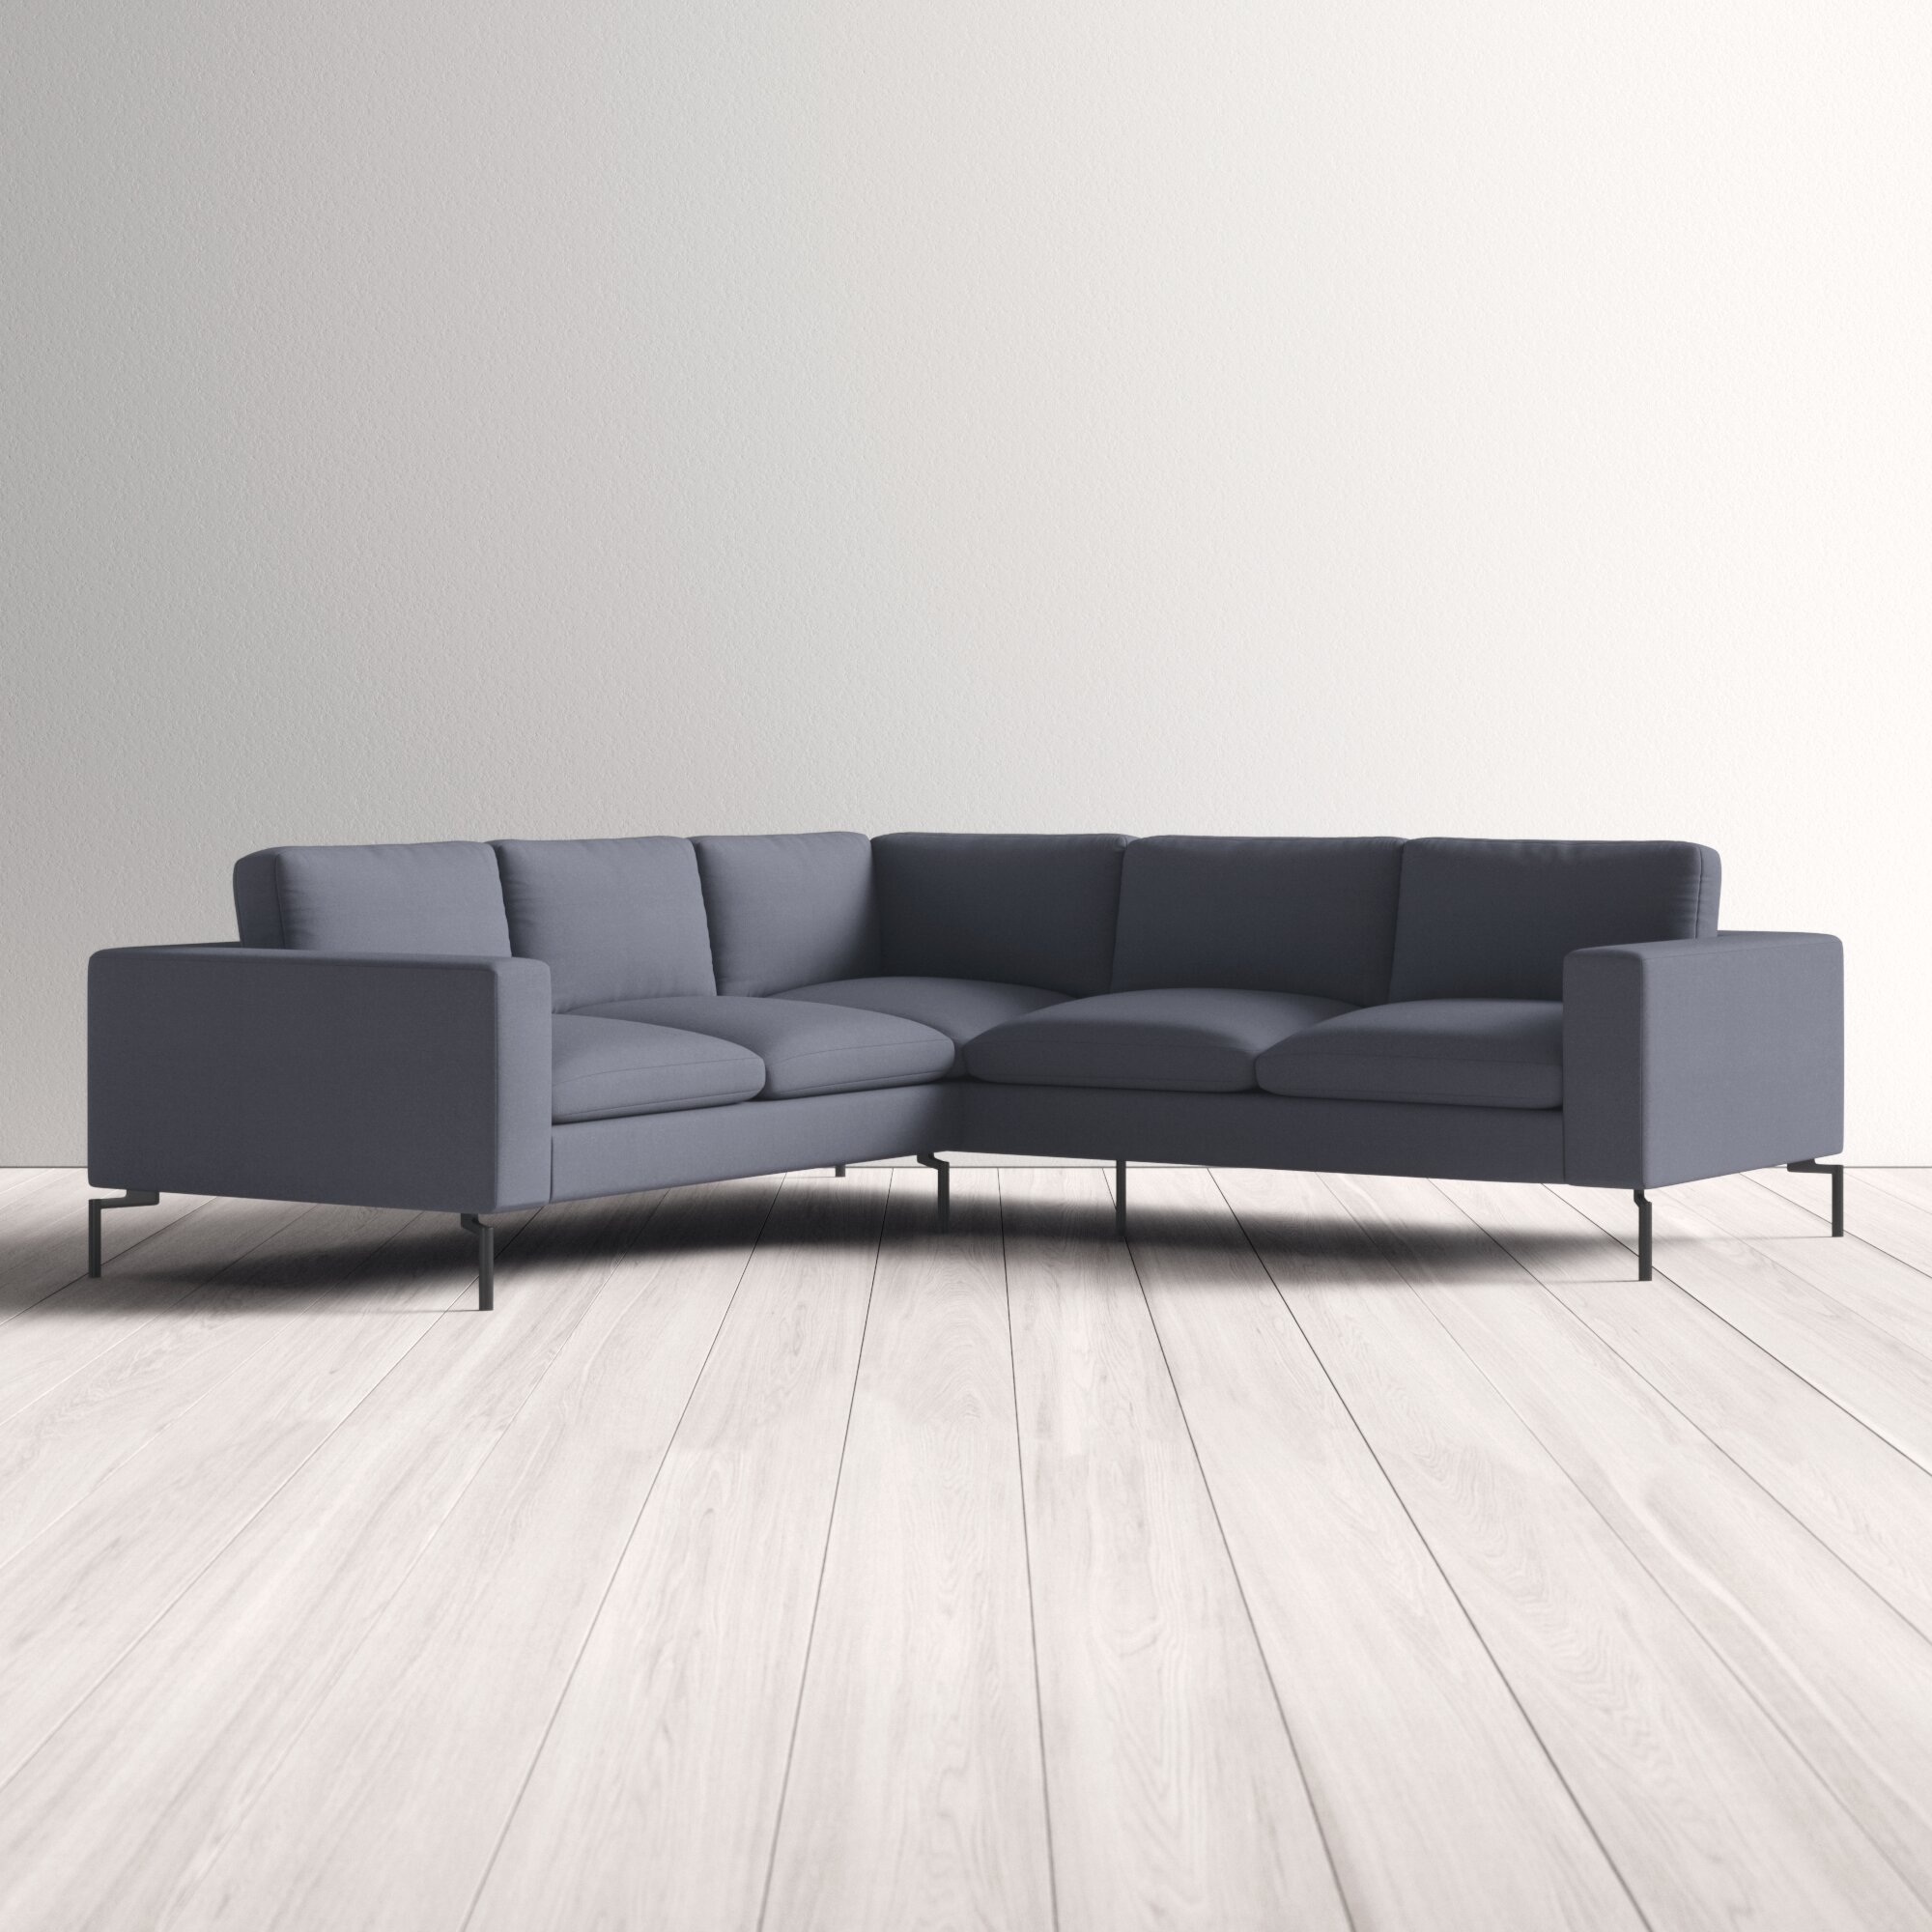 Awesome The New Standard Sectional Sofa Small Bralicious Painted Fabric Chair Ideas Braliciousco